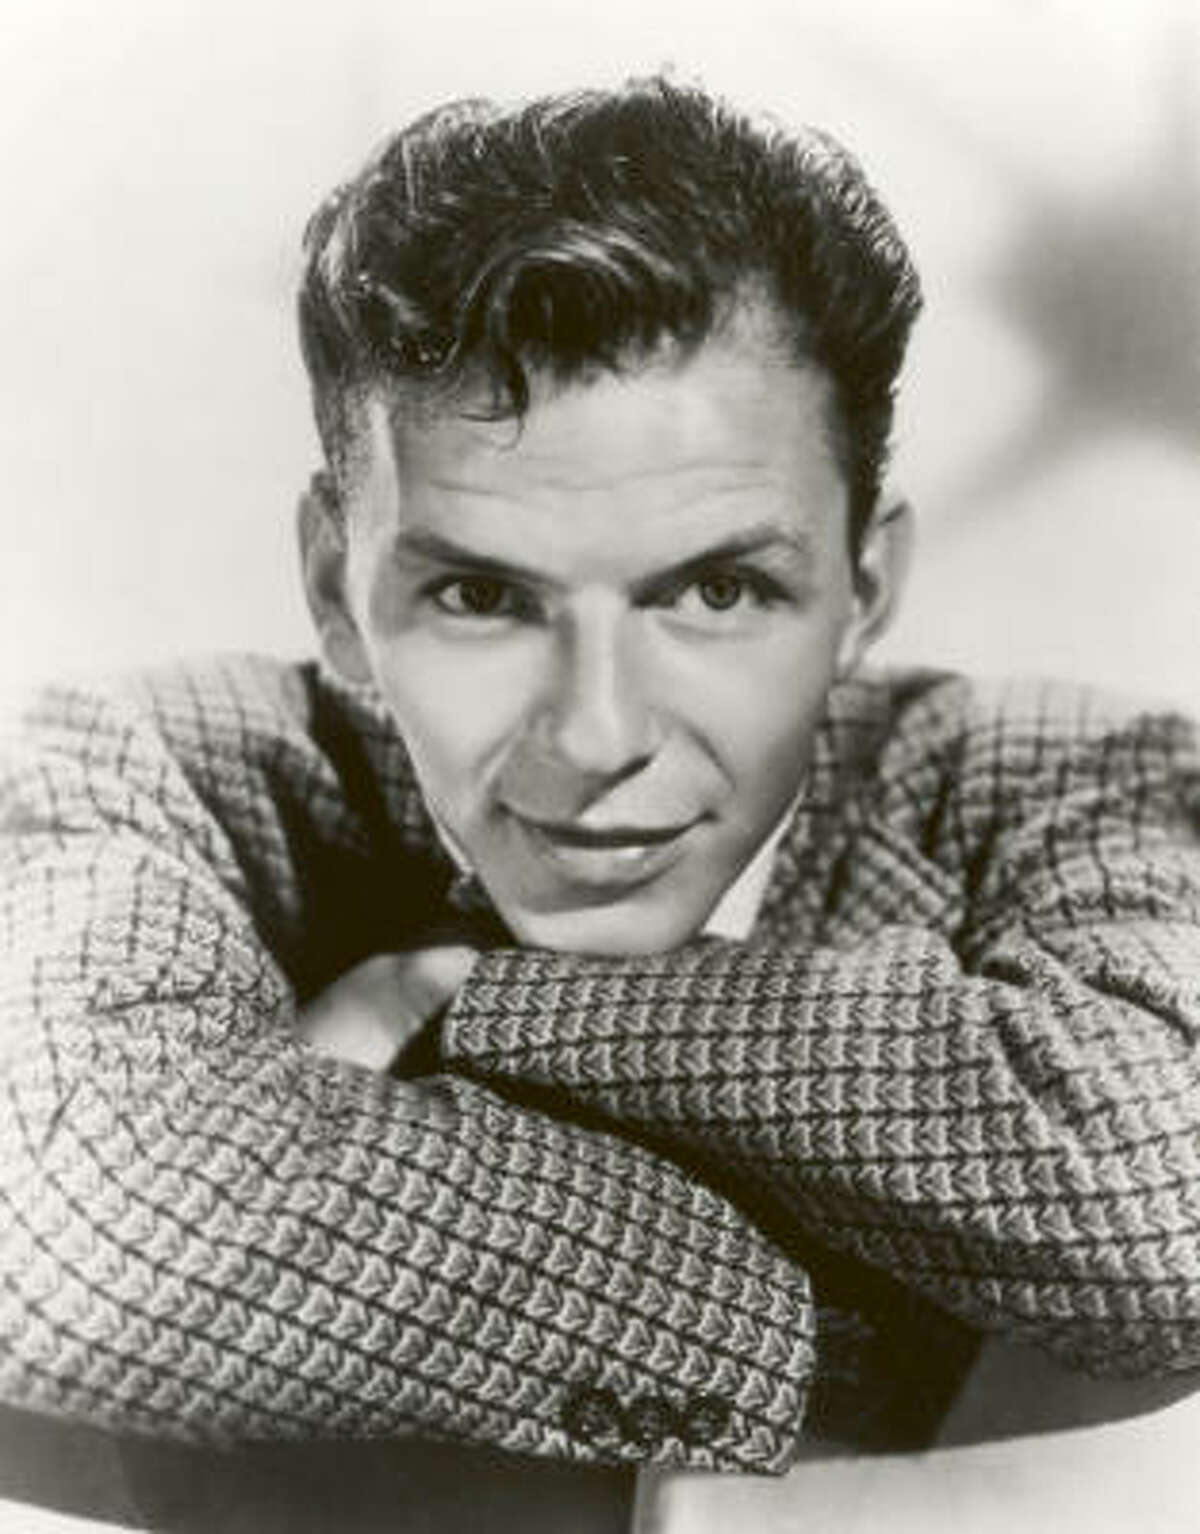 Difficult birth Sinatra was said to have weighed 13 1/2 lbs. at his birth in Hoboken, N.J. in 1915. He was delivered by the use of forceps, which perforated an eardrum and scarred the left side of his face.